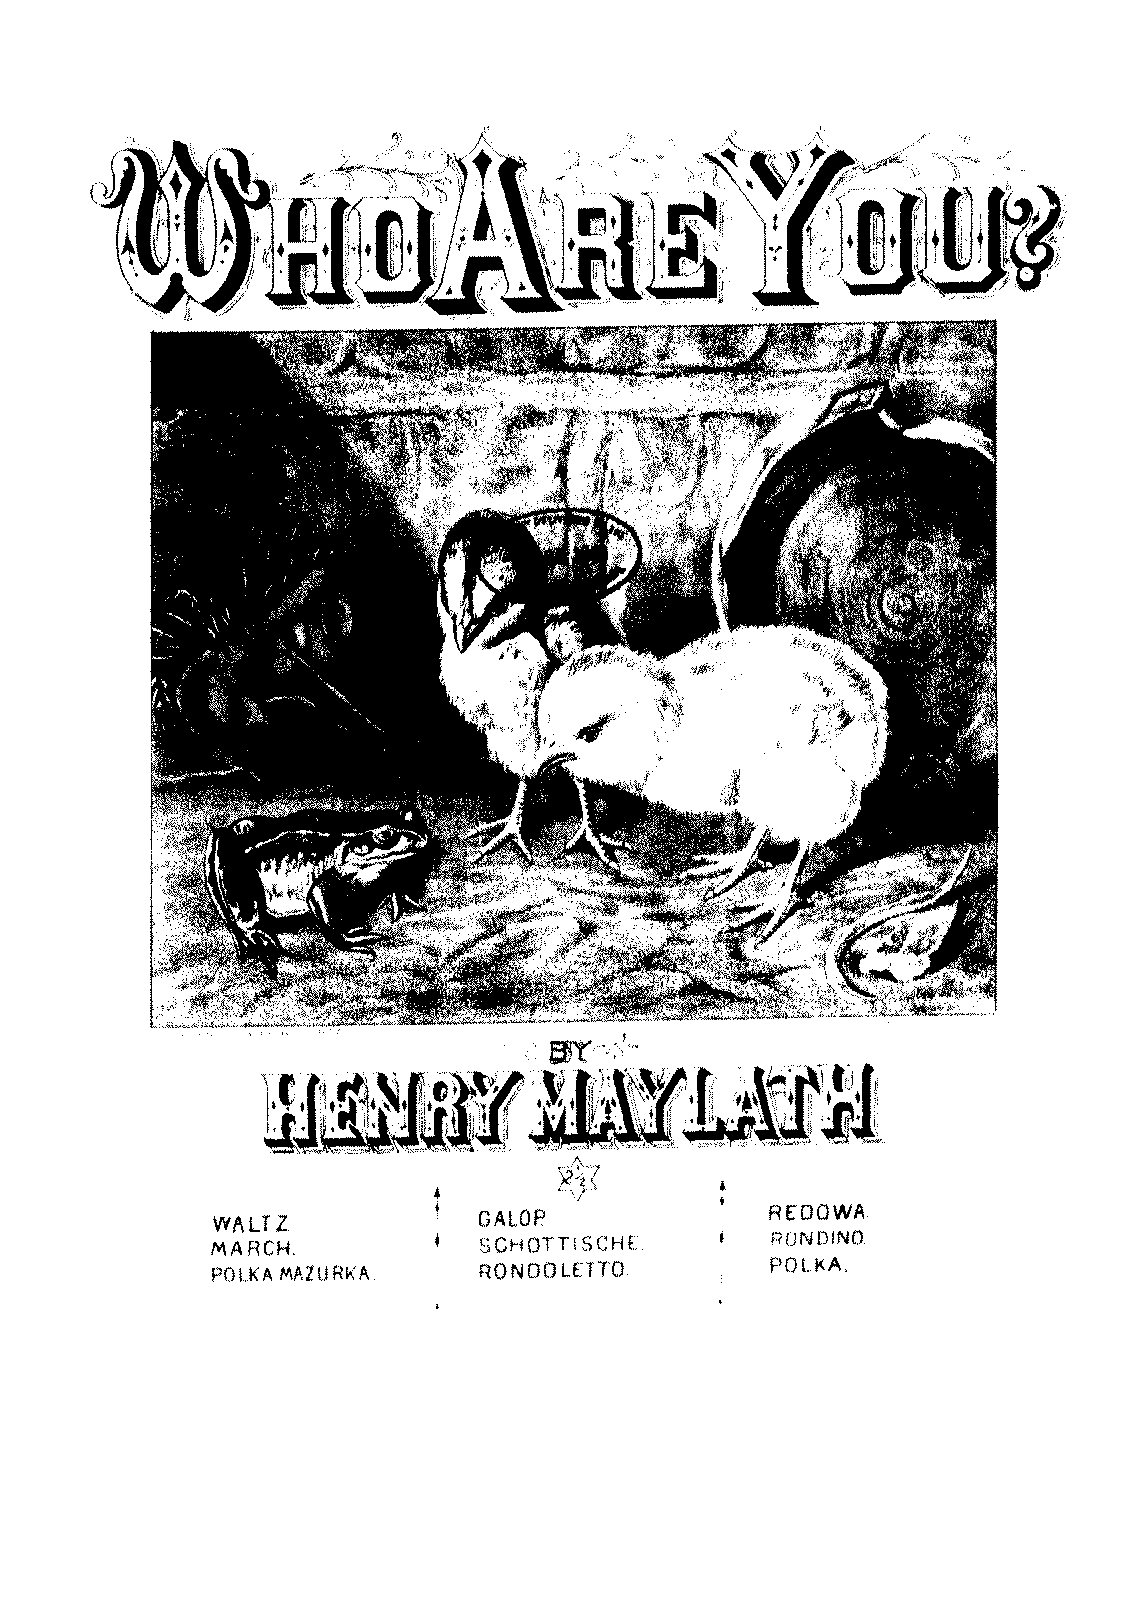 PMLP616689-Maylath - Who are You no 1 - 9.pdf